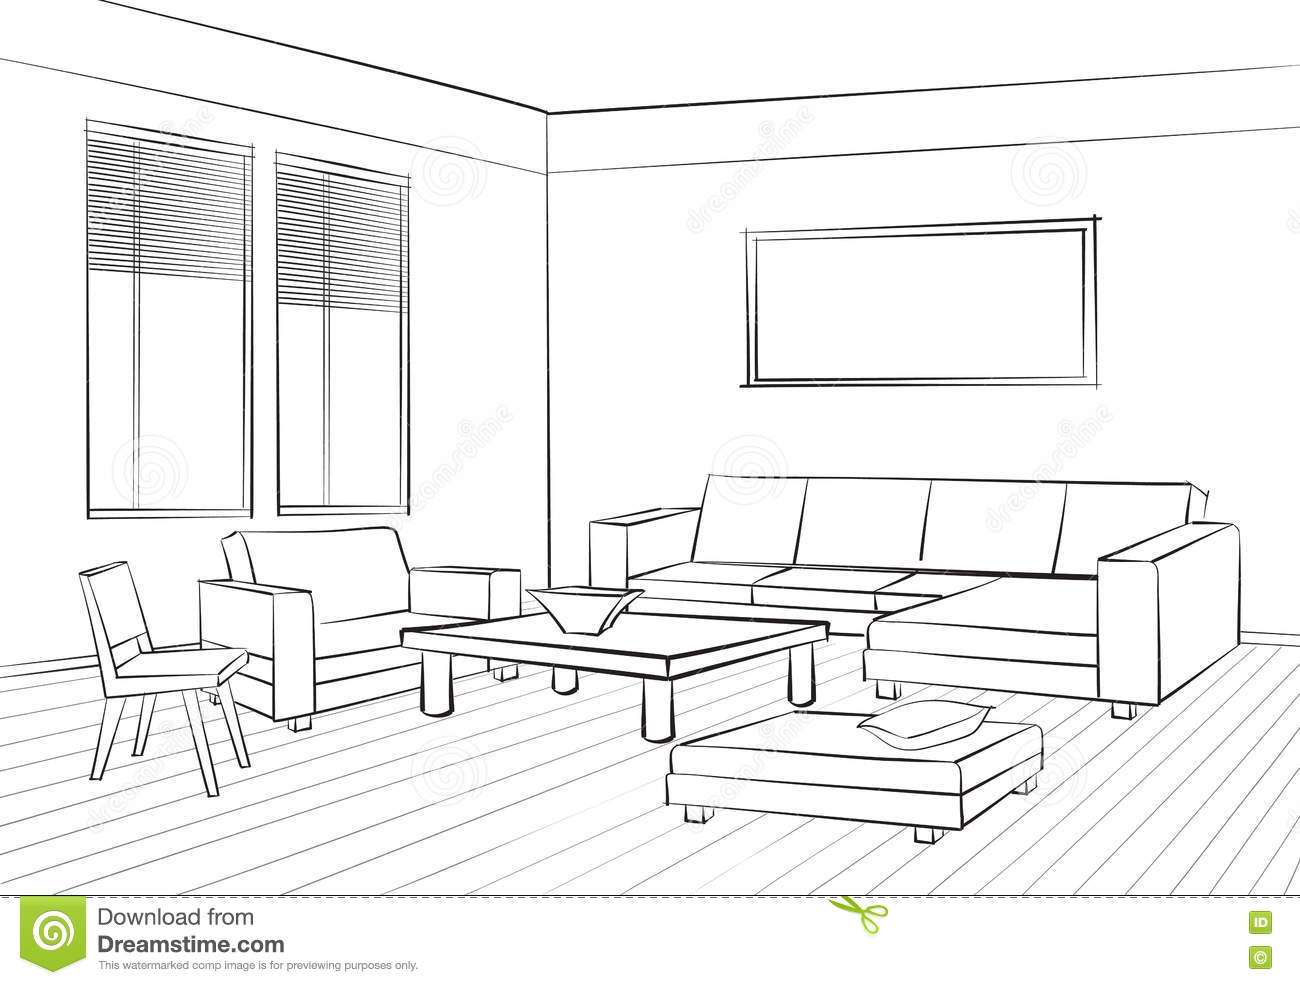 Living room design room interior sketch interior furniture for Drawing room furniture designs